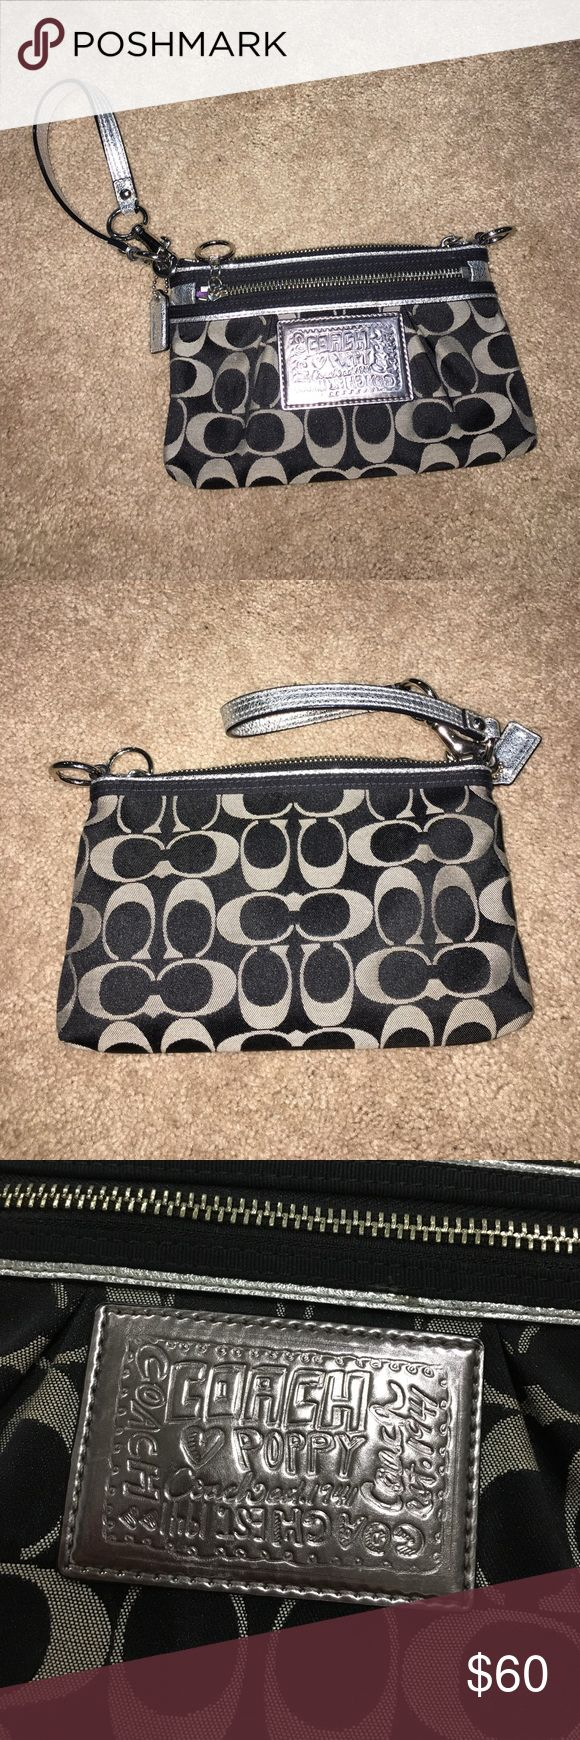 Coach poppy wristlet Silver and black coach poppy wristlet! Has two zippered areas! 8 in wide by 5 in high Coach Bags Clutches & Wristlets